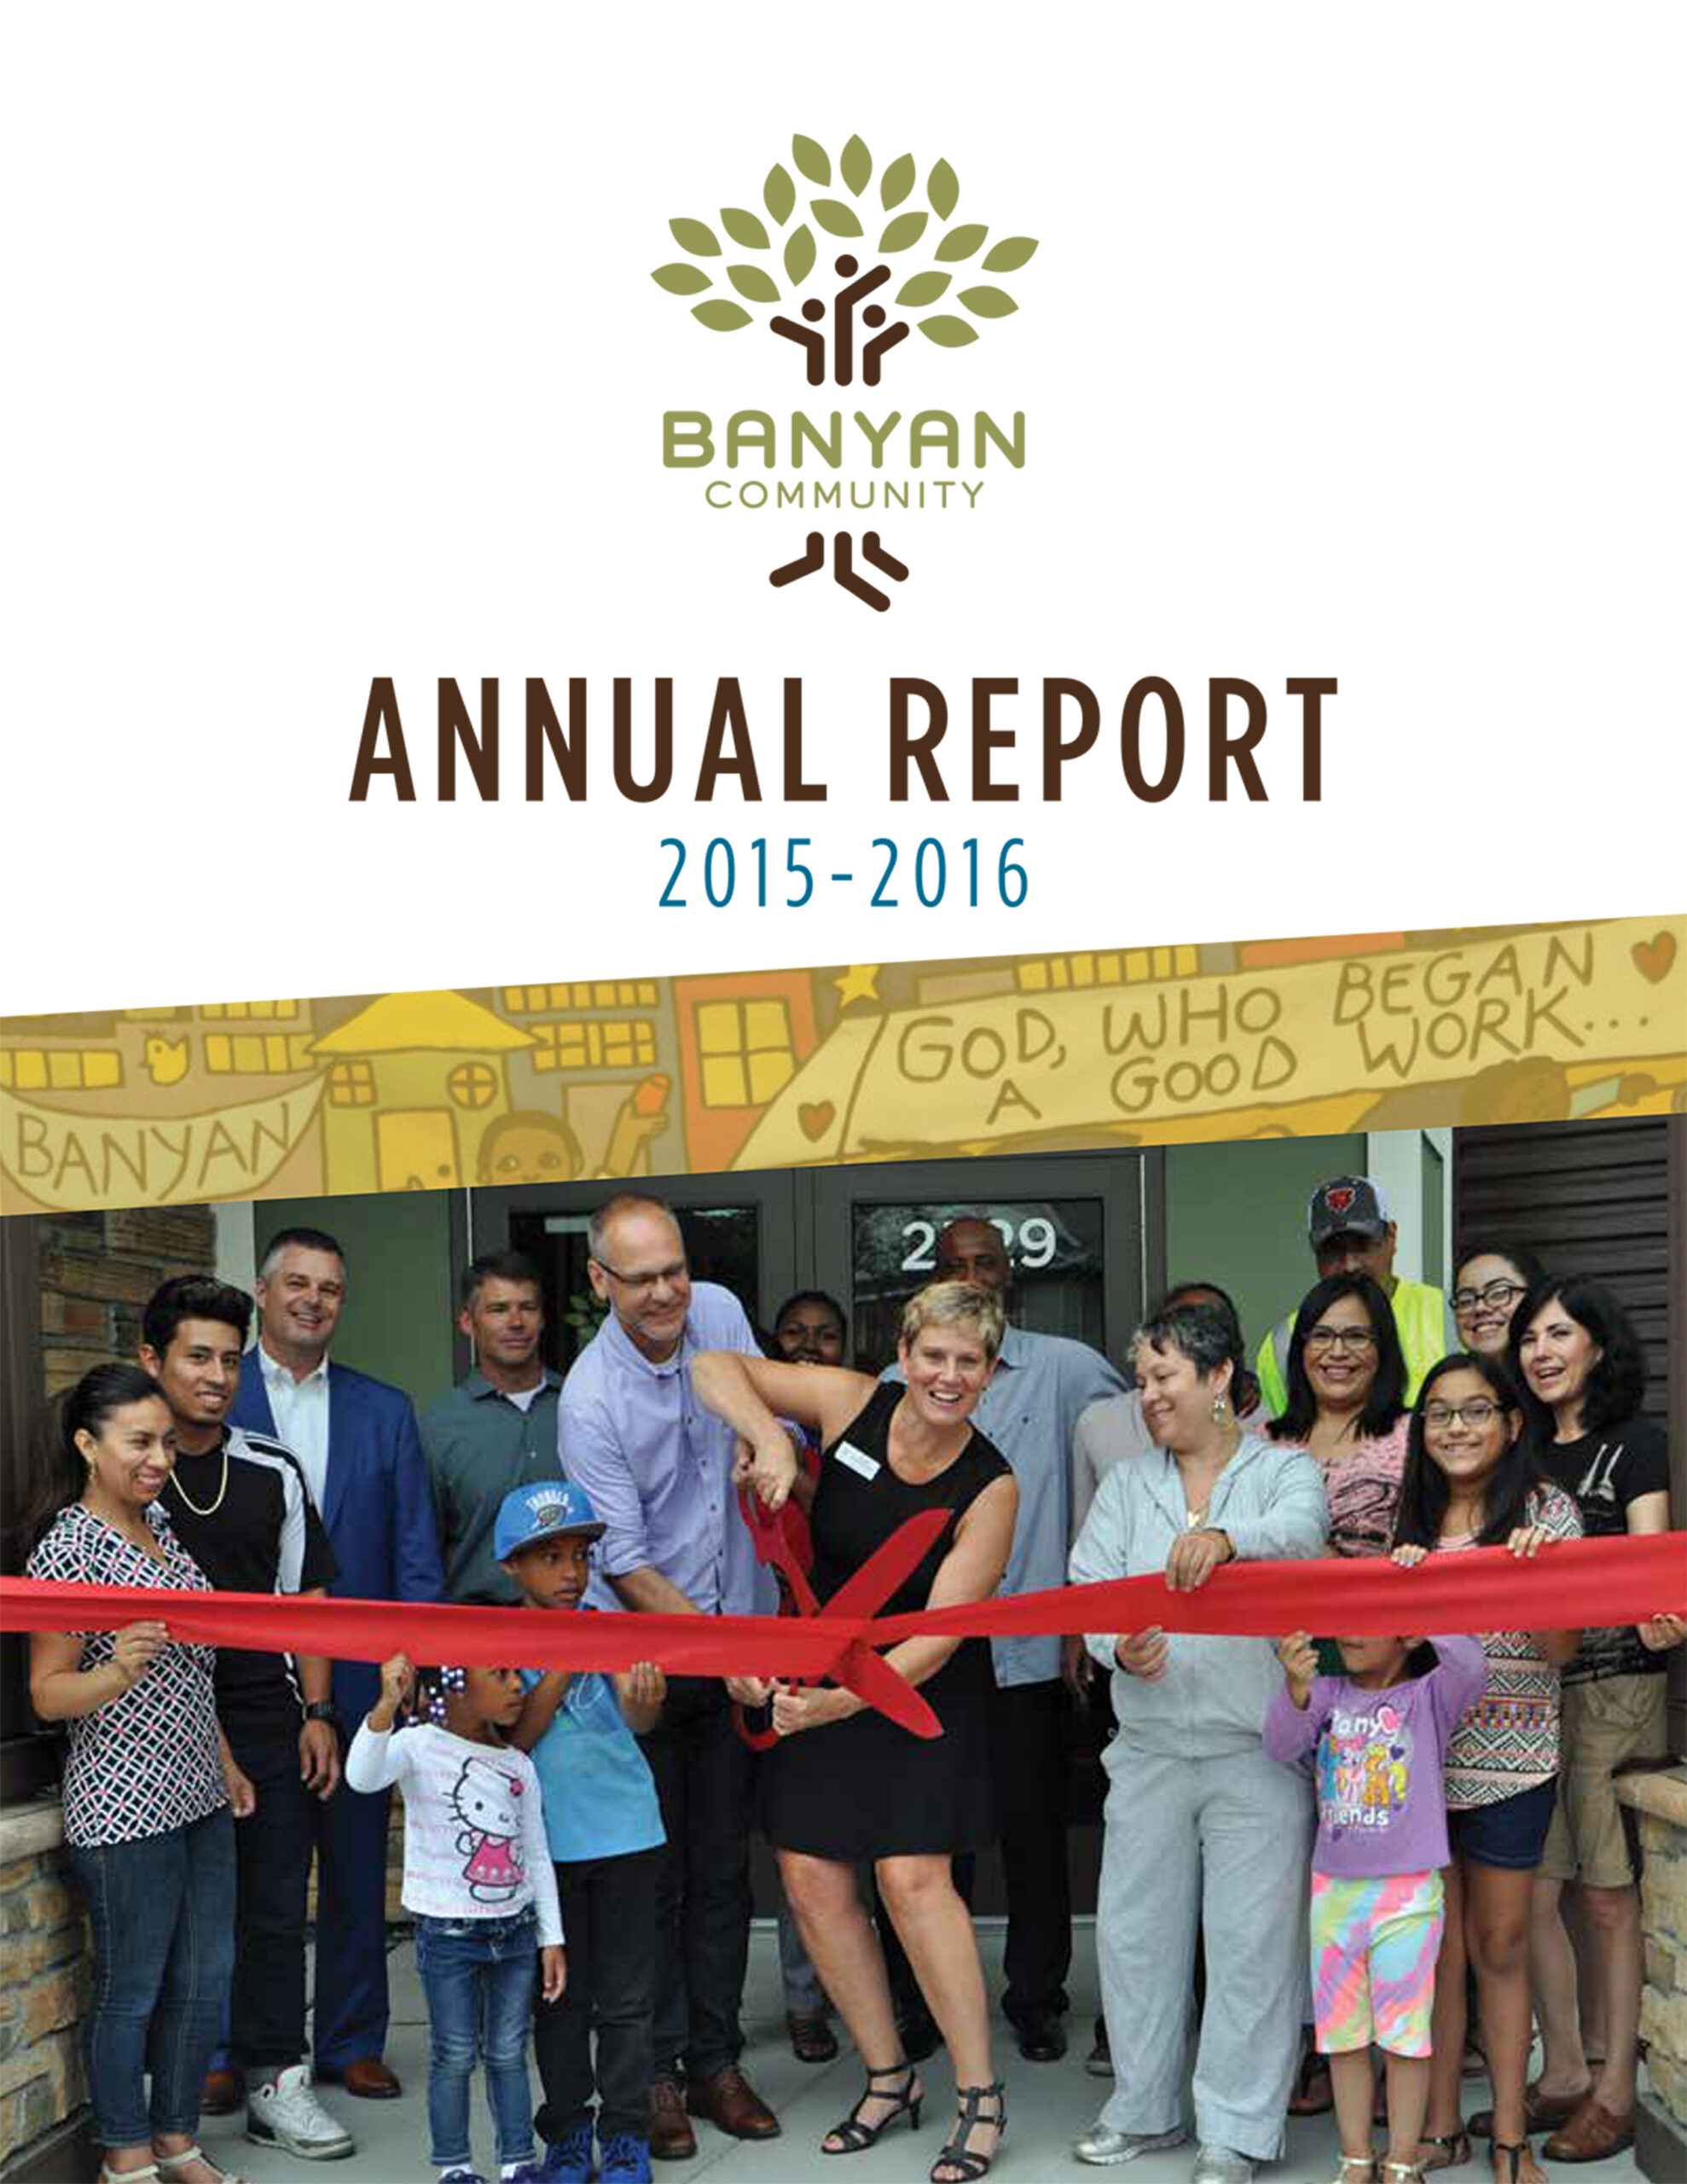 Banyan Community's 2015-2016 annual report cover